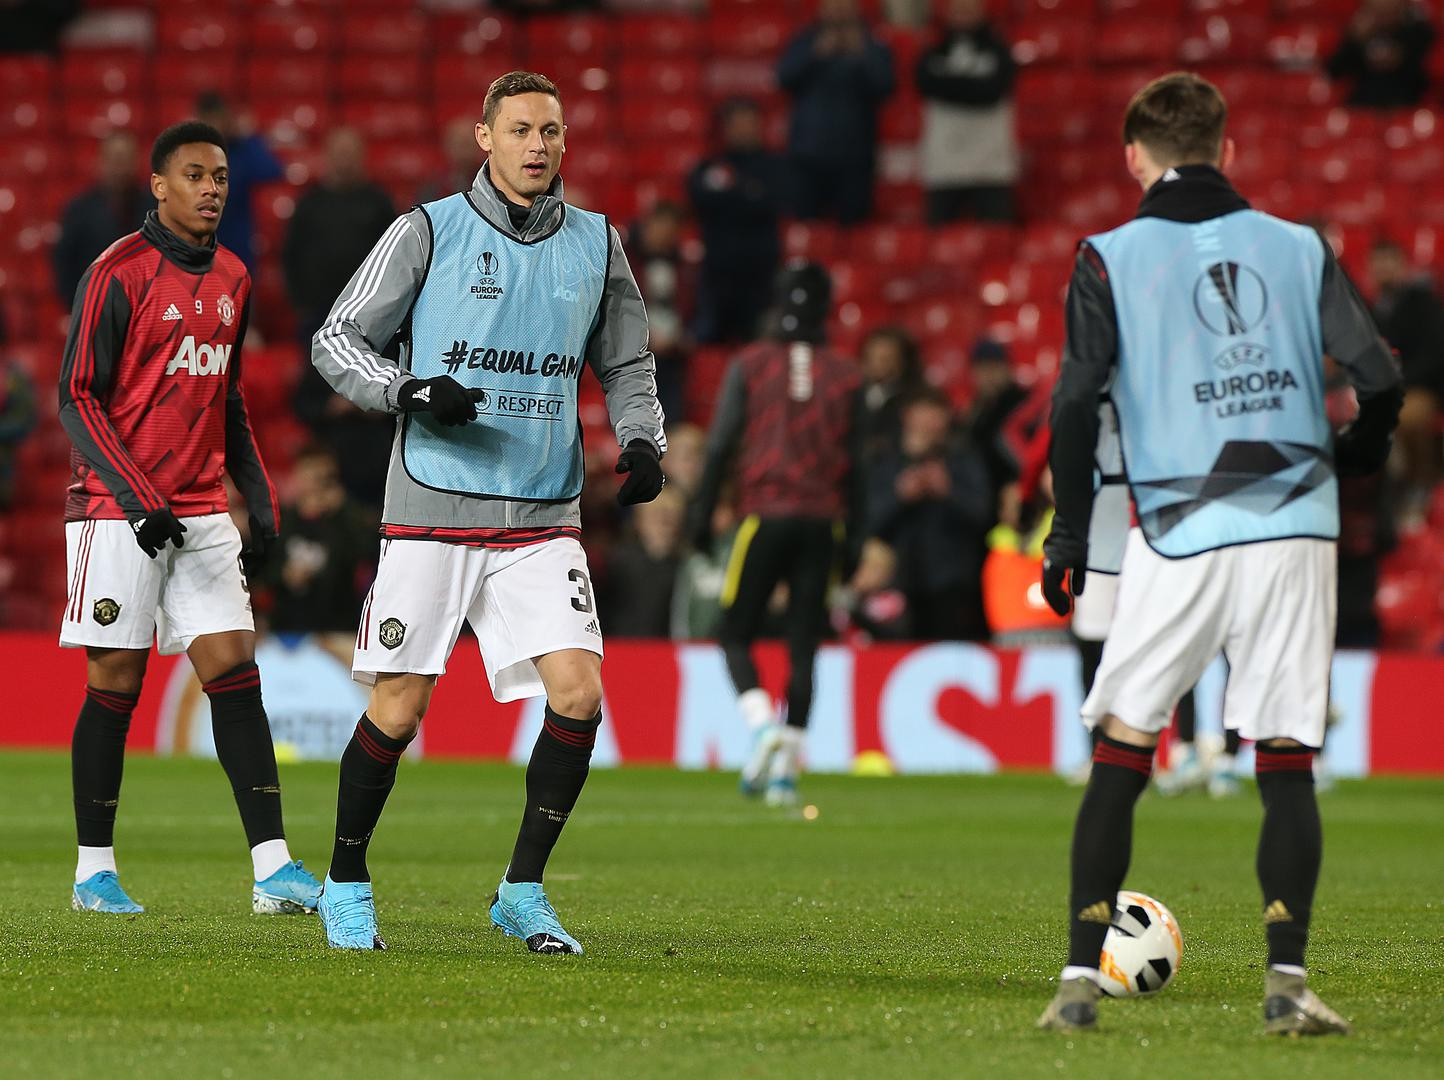 Anthony Martial, Nemanja Matic and James Garner warm-up ahead of a Europa League match.